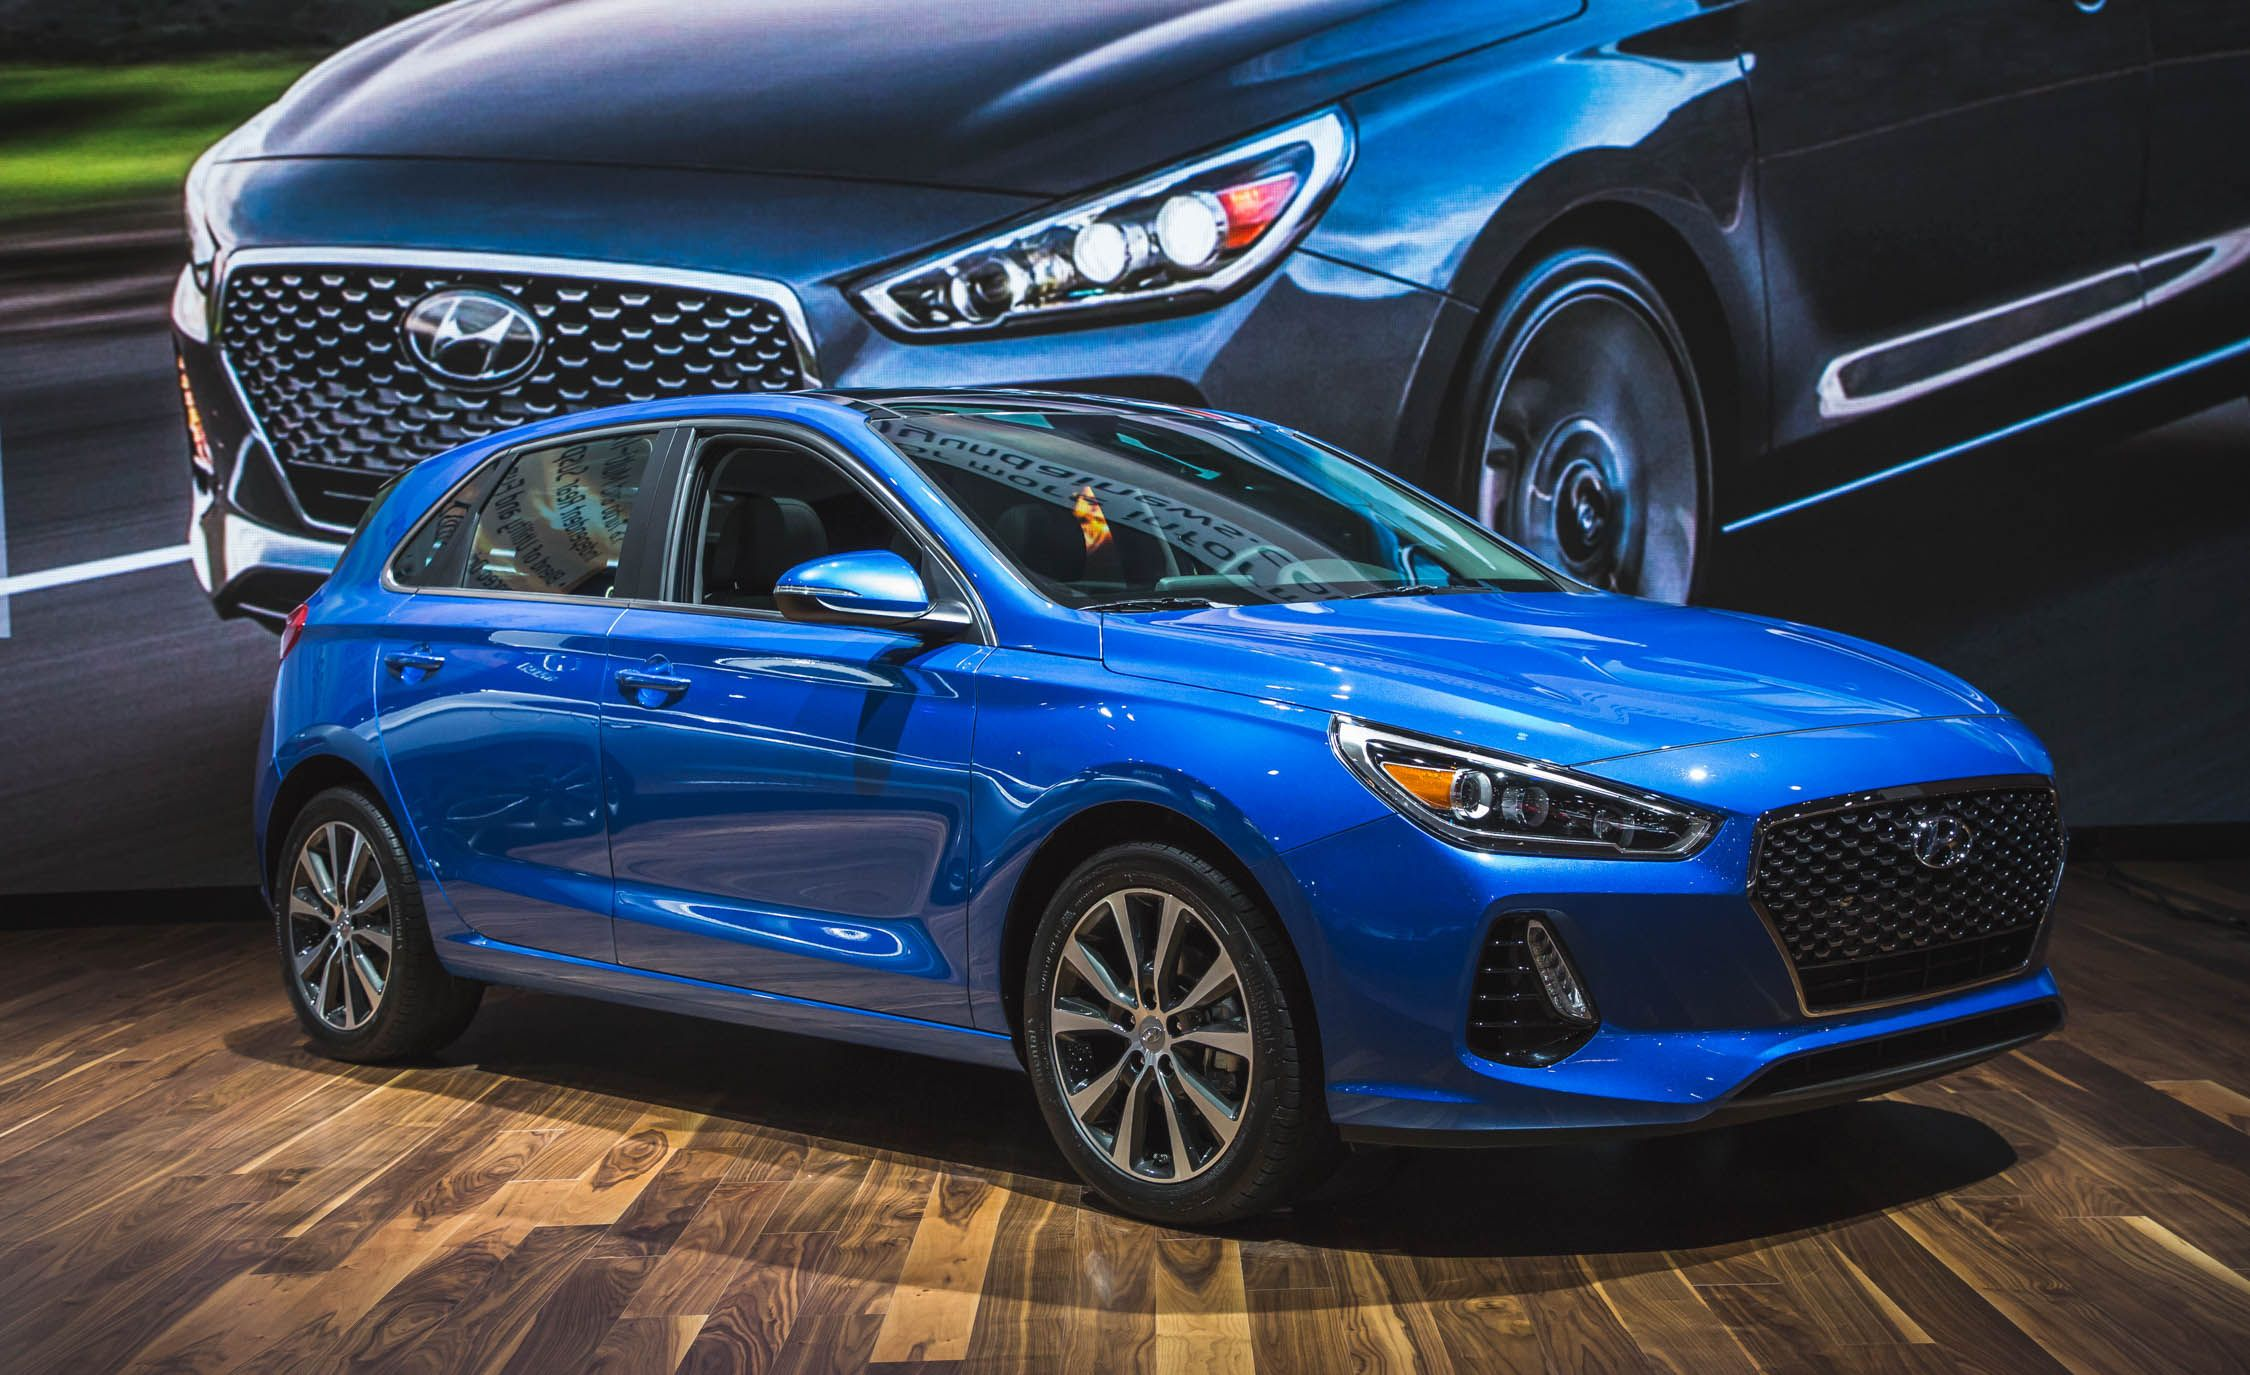 2018 Hyundai Elantra Gt A Euro Hatch With An Available Turbo Manual Combo